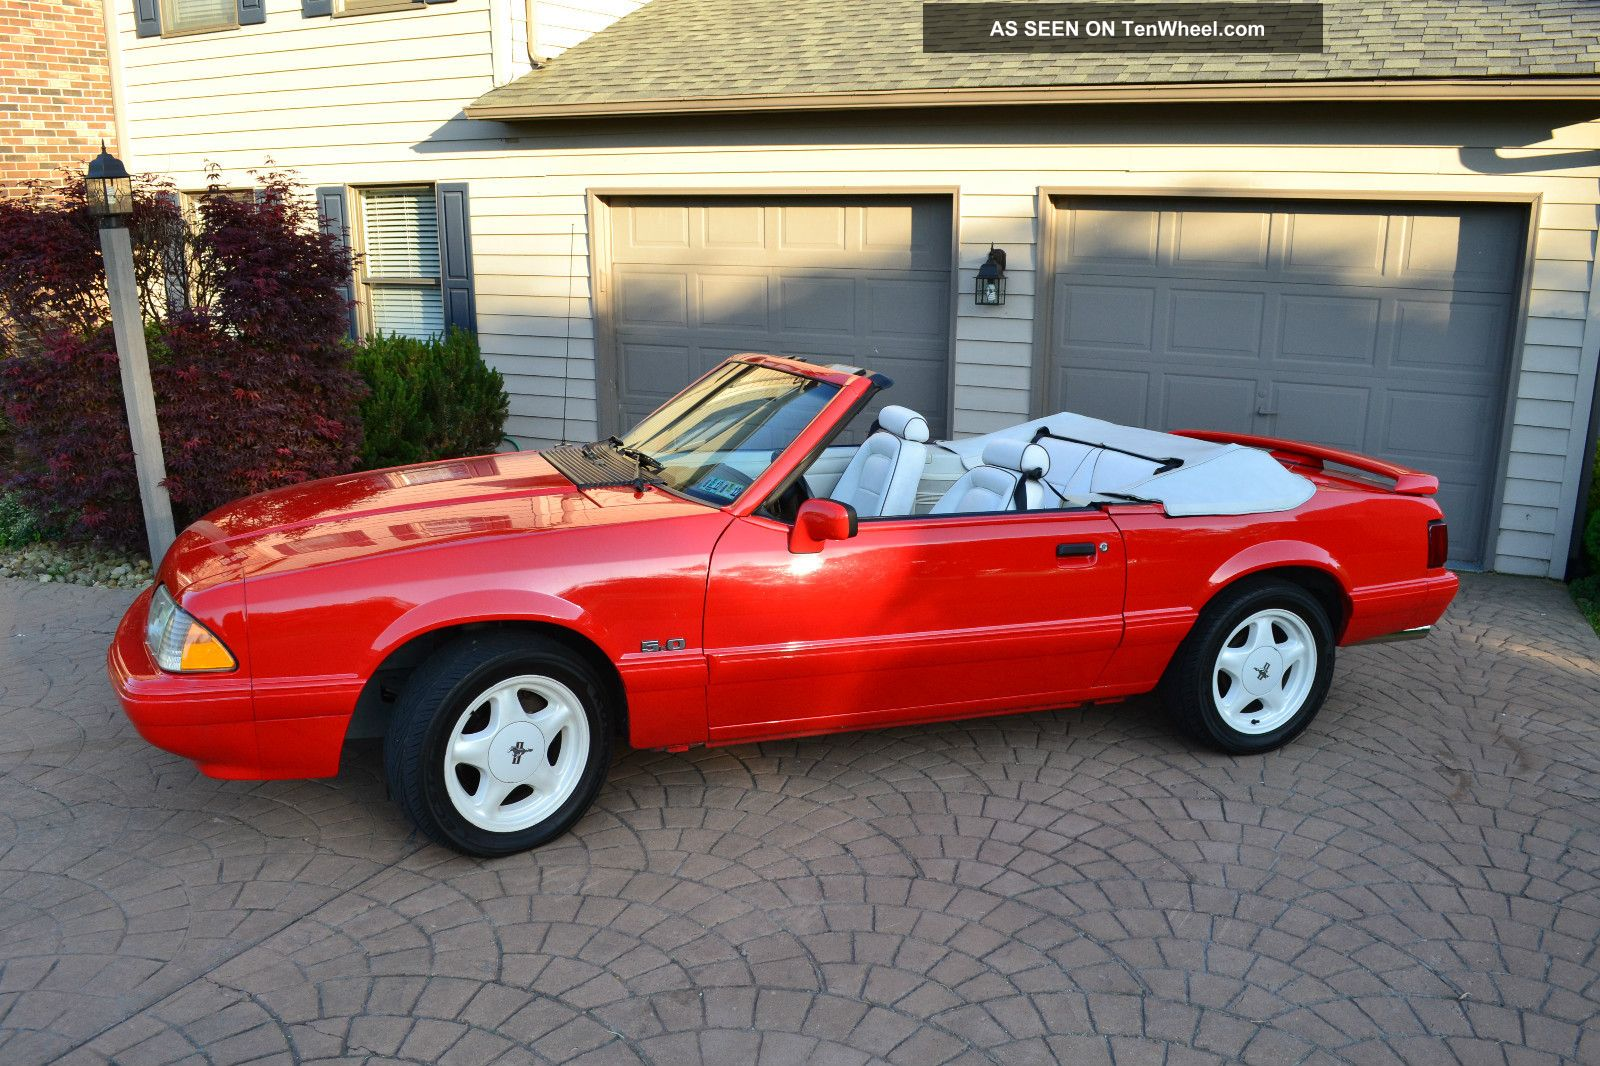 1992 Ford Mustang Quot Summer Edition Quot 5 0 Convertible